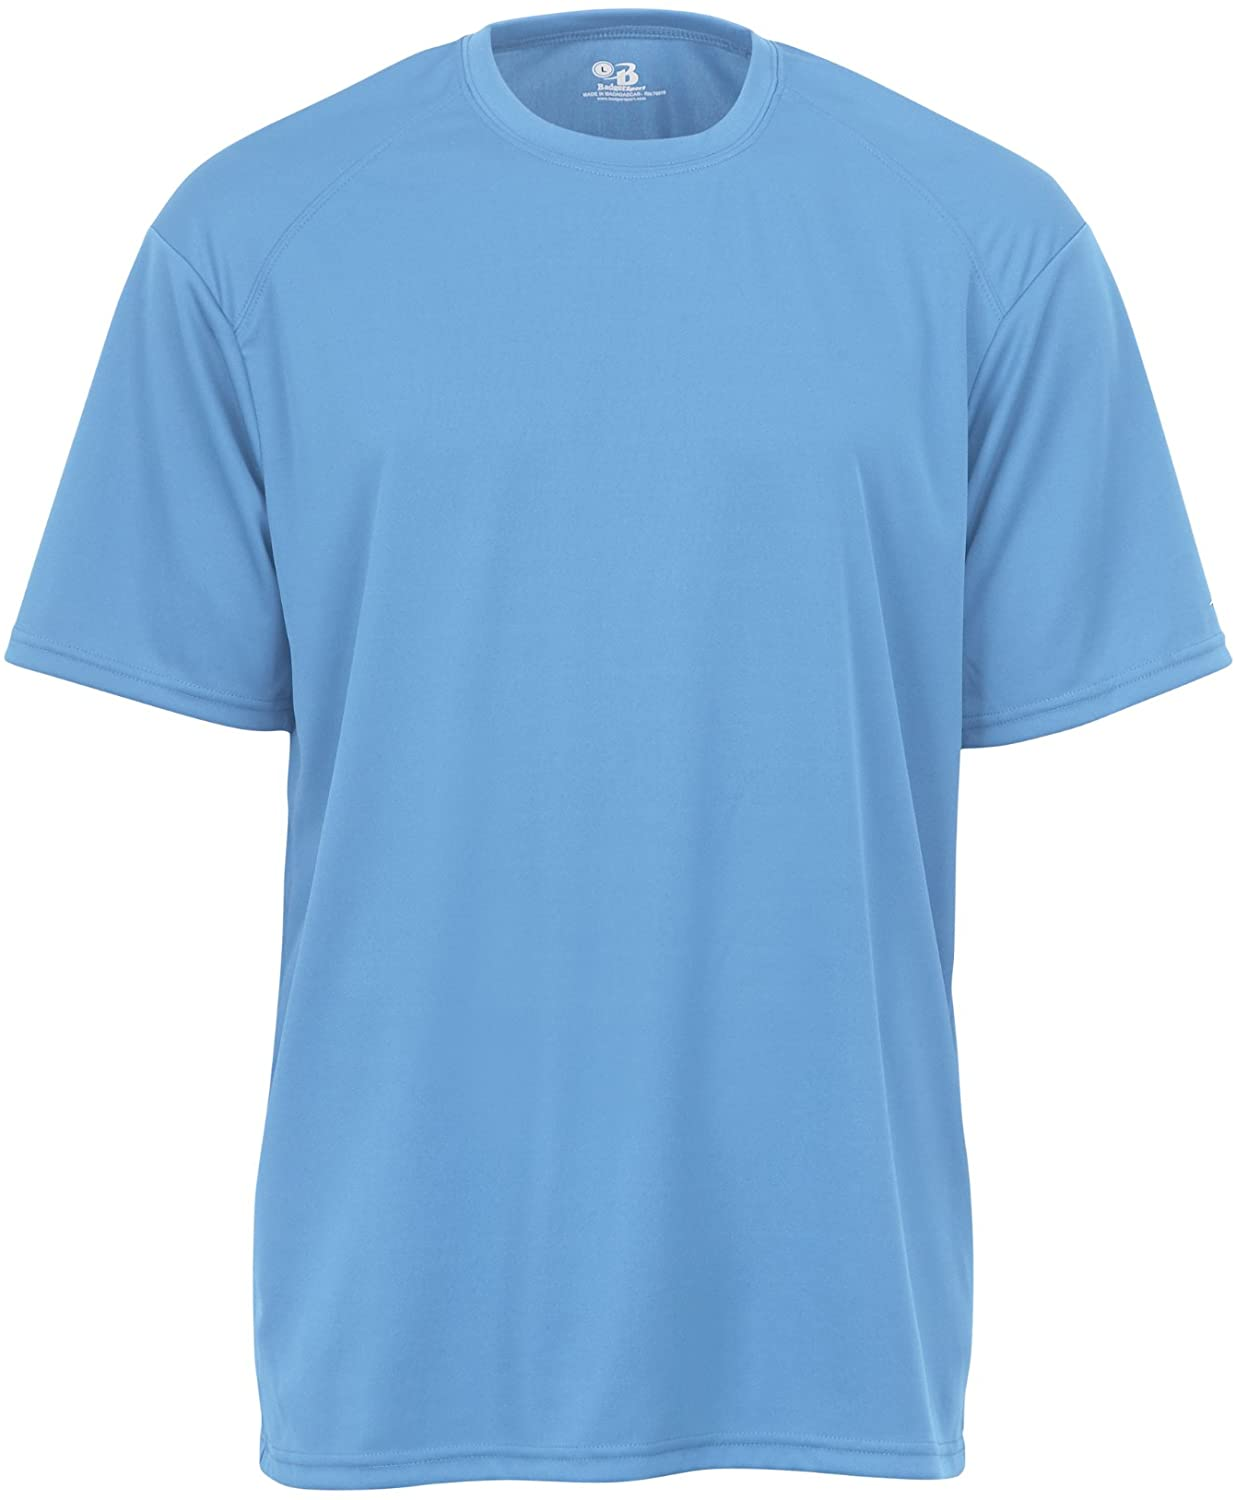 Badger Sportswear Men's B-Dry Tee, Columbia Blue, Large